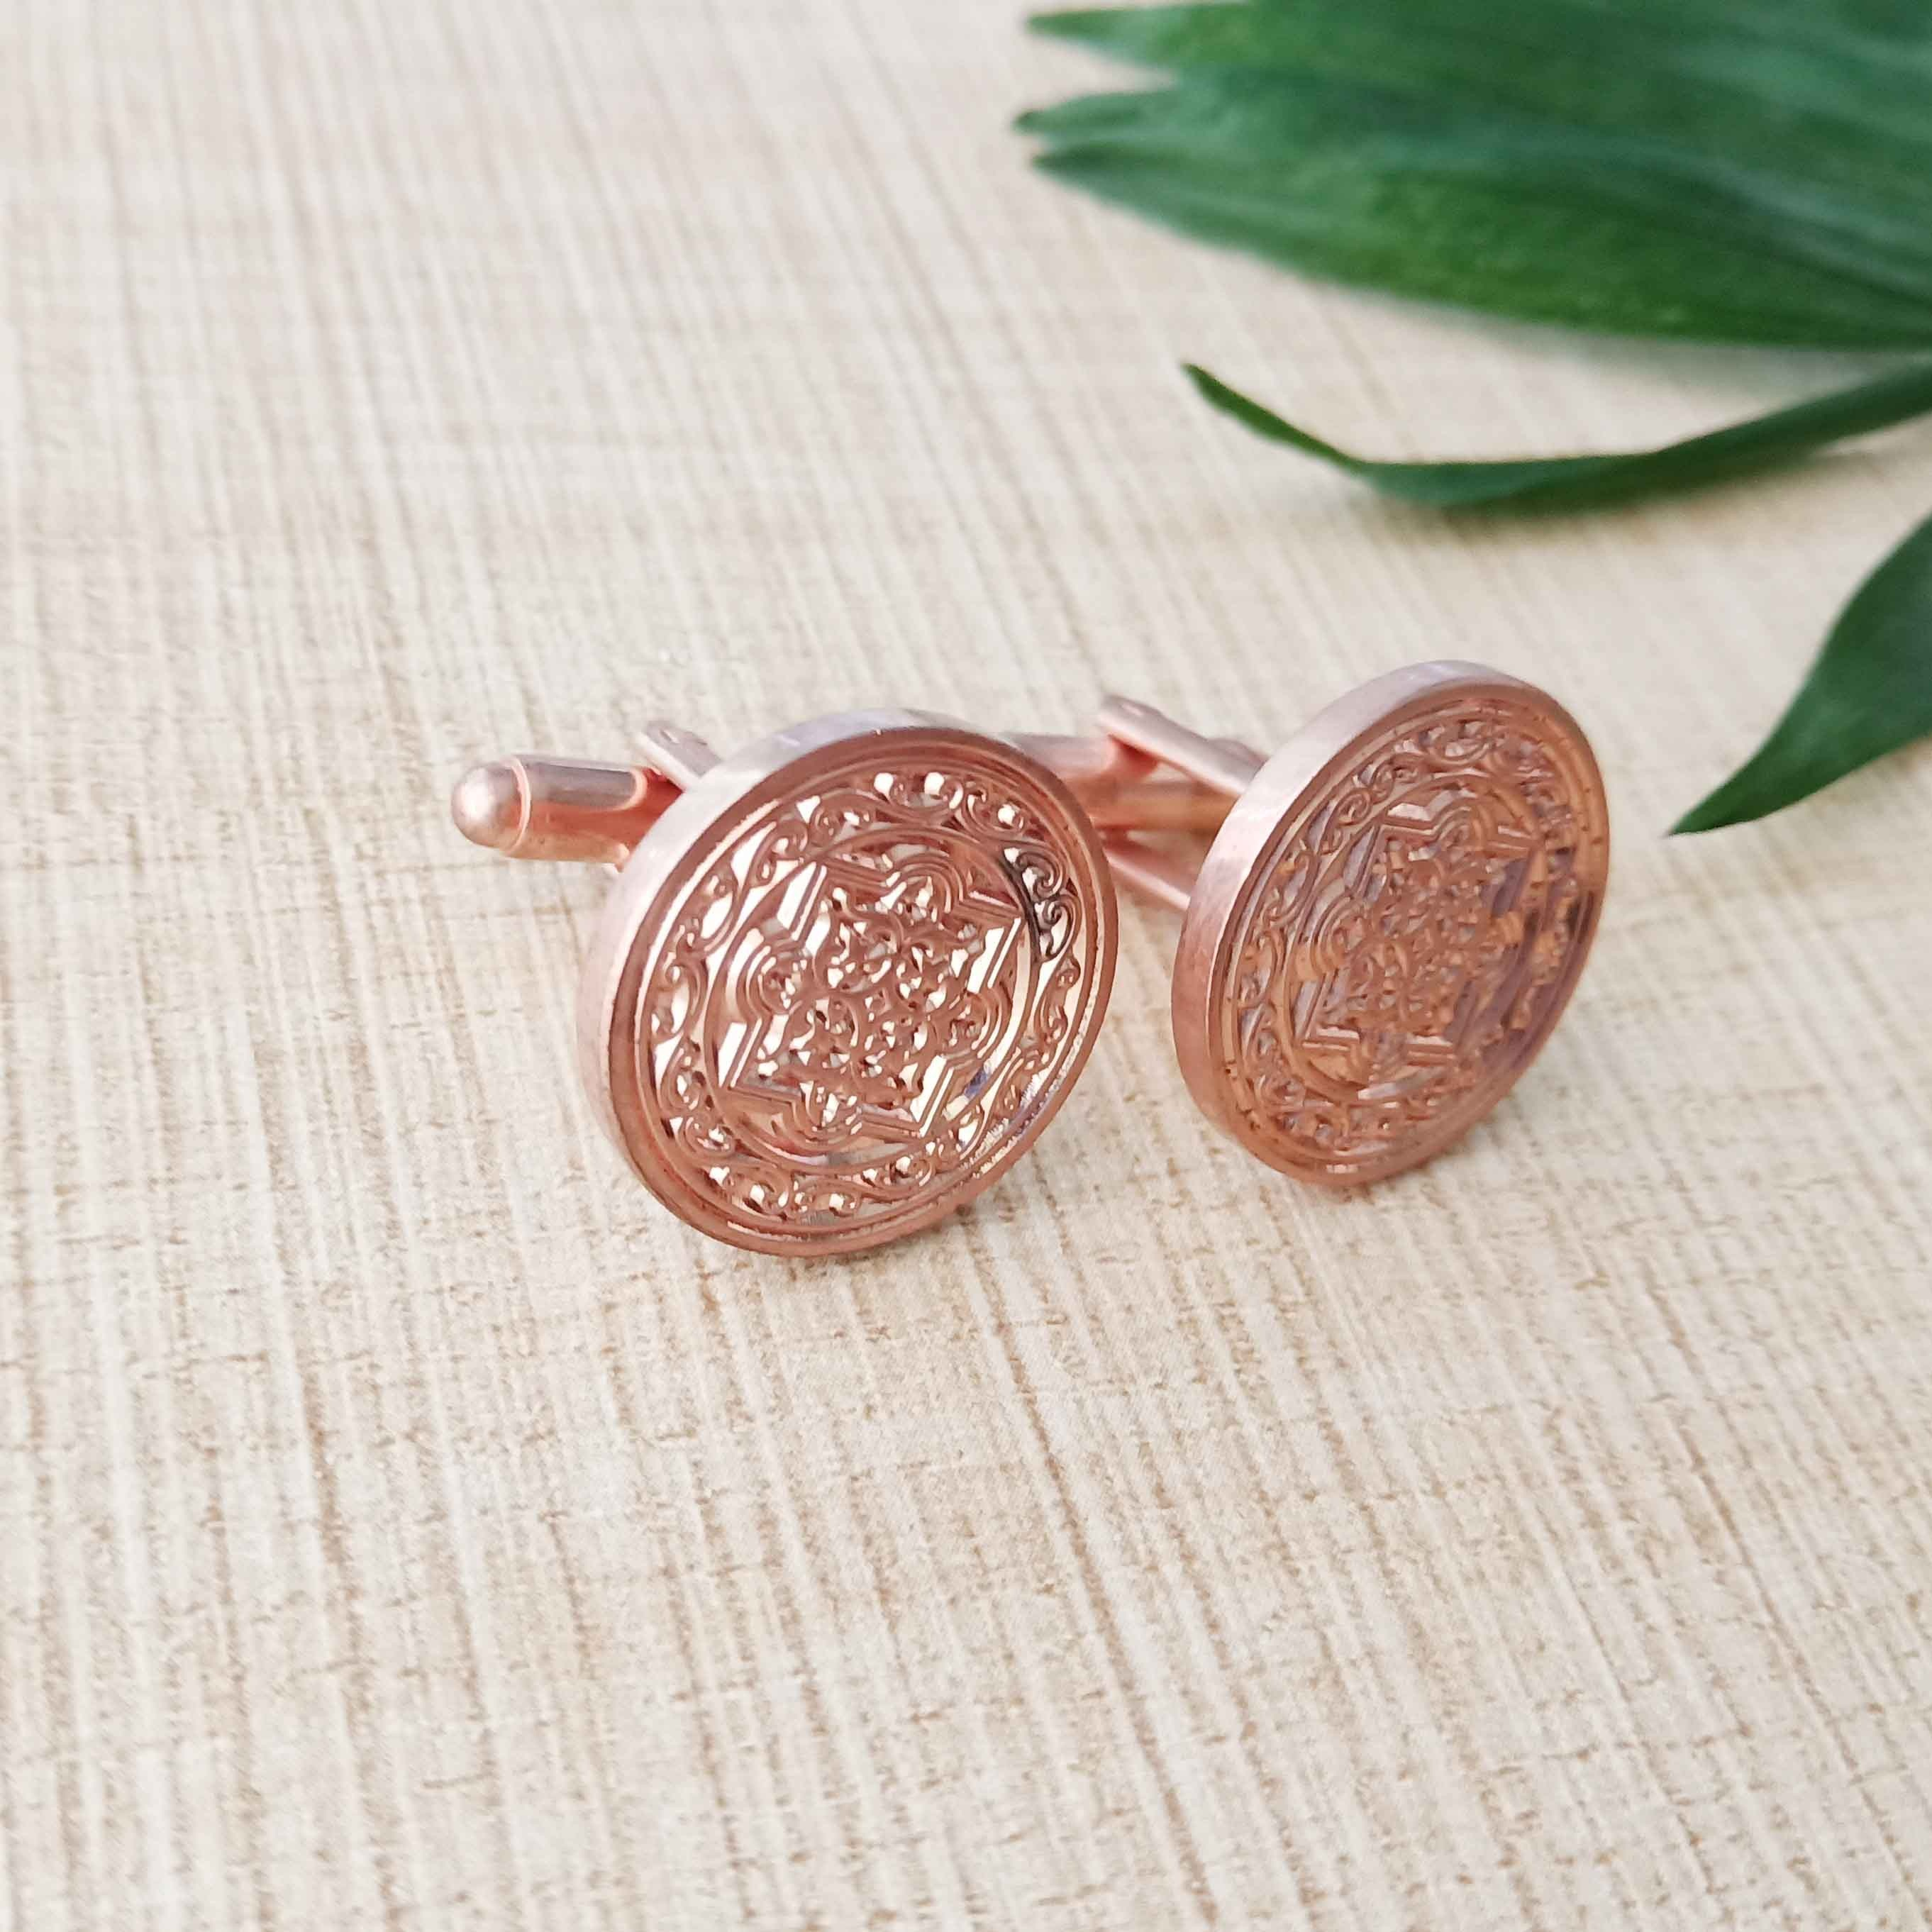 Rose gold high fashion <strong>custom</strong> <strong>engraved</strong> logo <strong>cufflinks</strong>